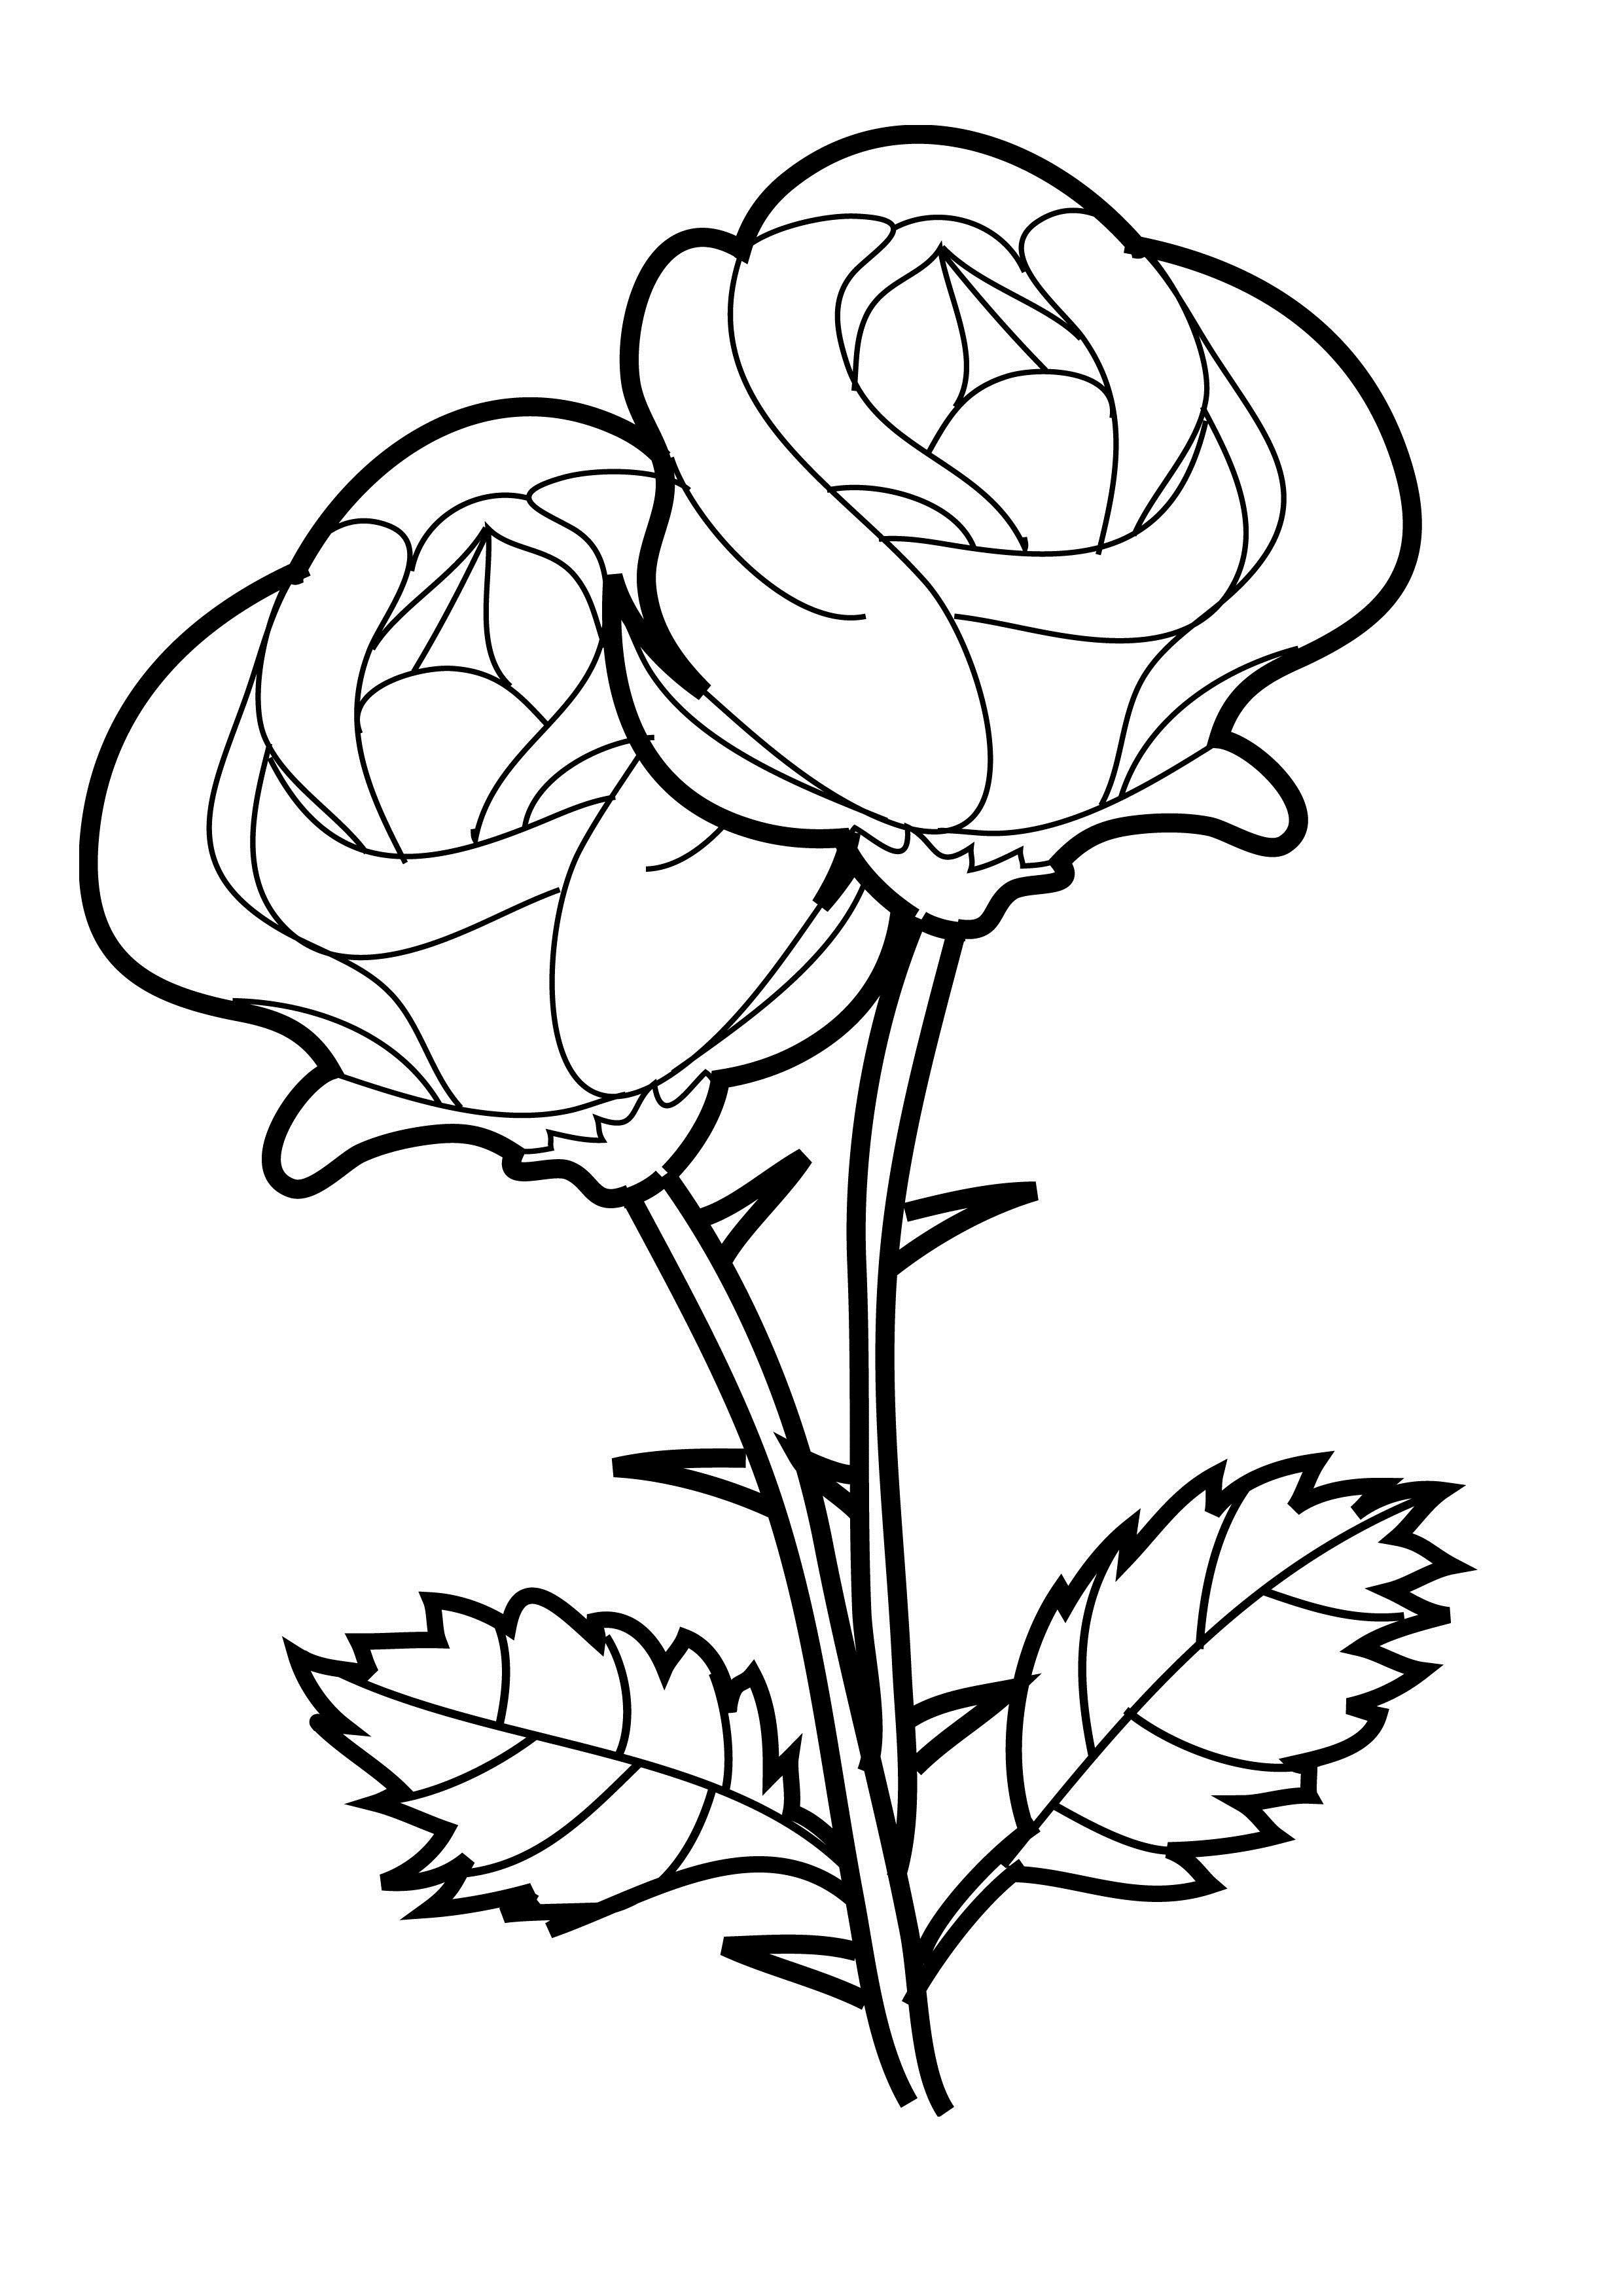 Flower Coloring Pages | Rose coloring pages, Flower ... | colouring pages flowers